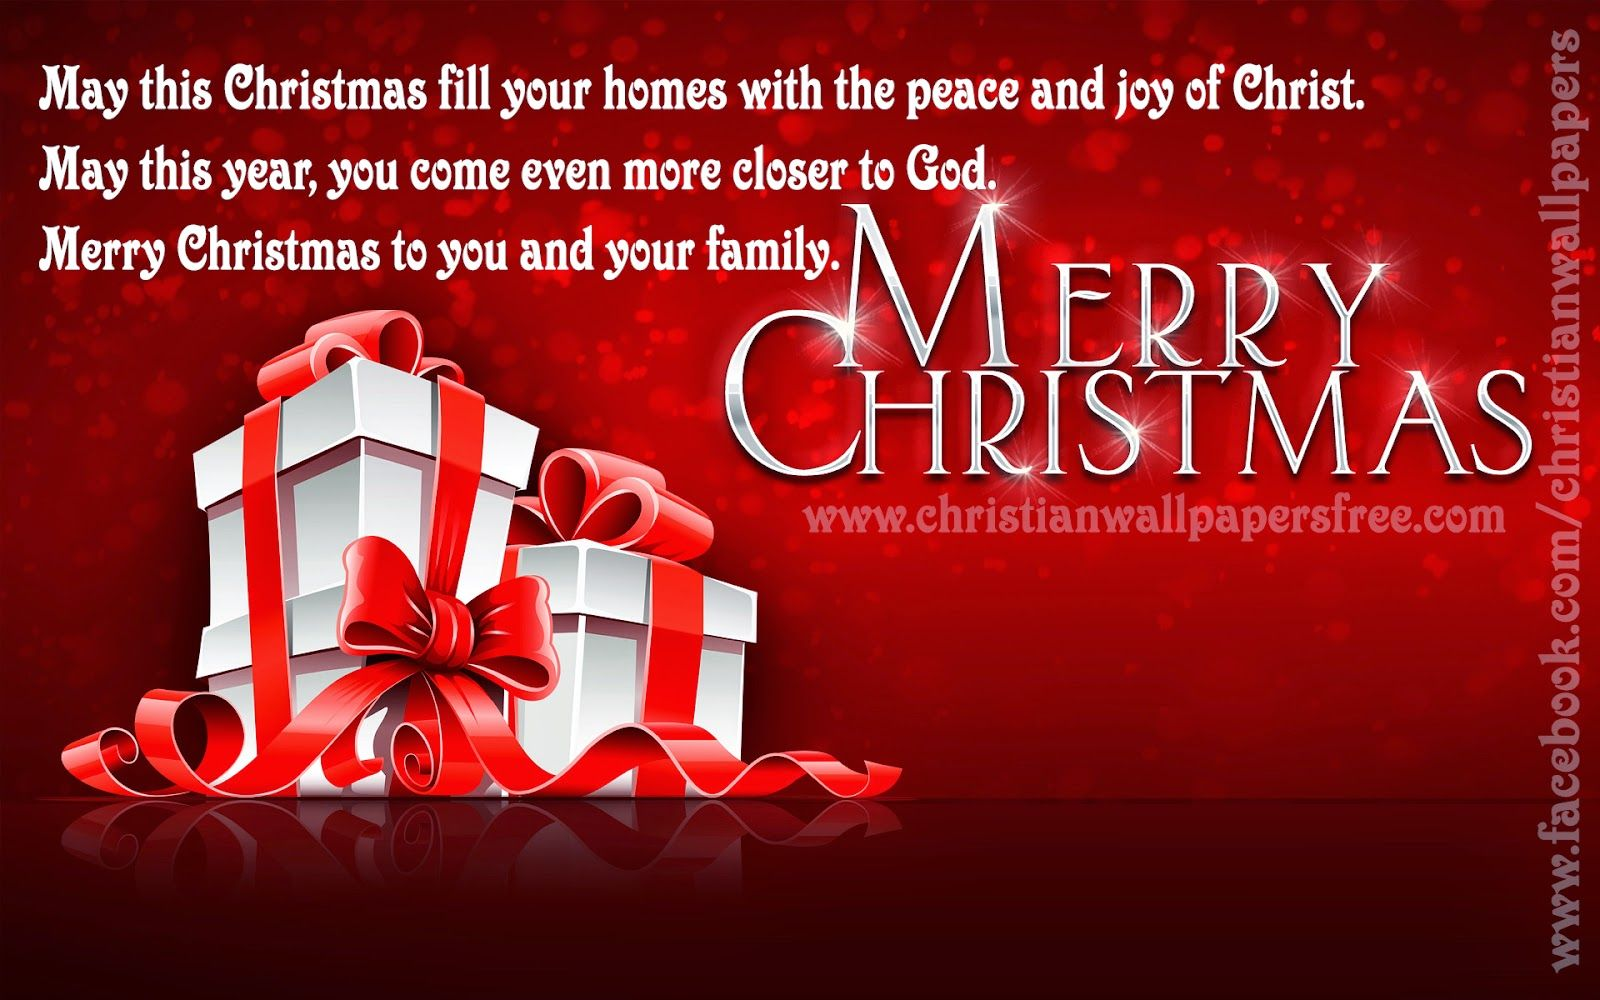 Merry Christmas Family Greetings Card Merry Christmas Family And Merry